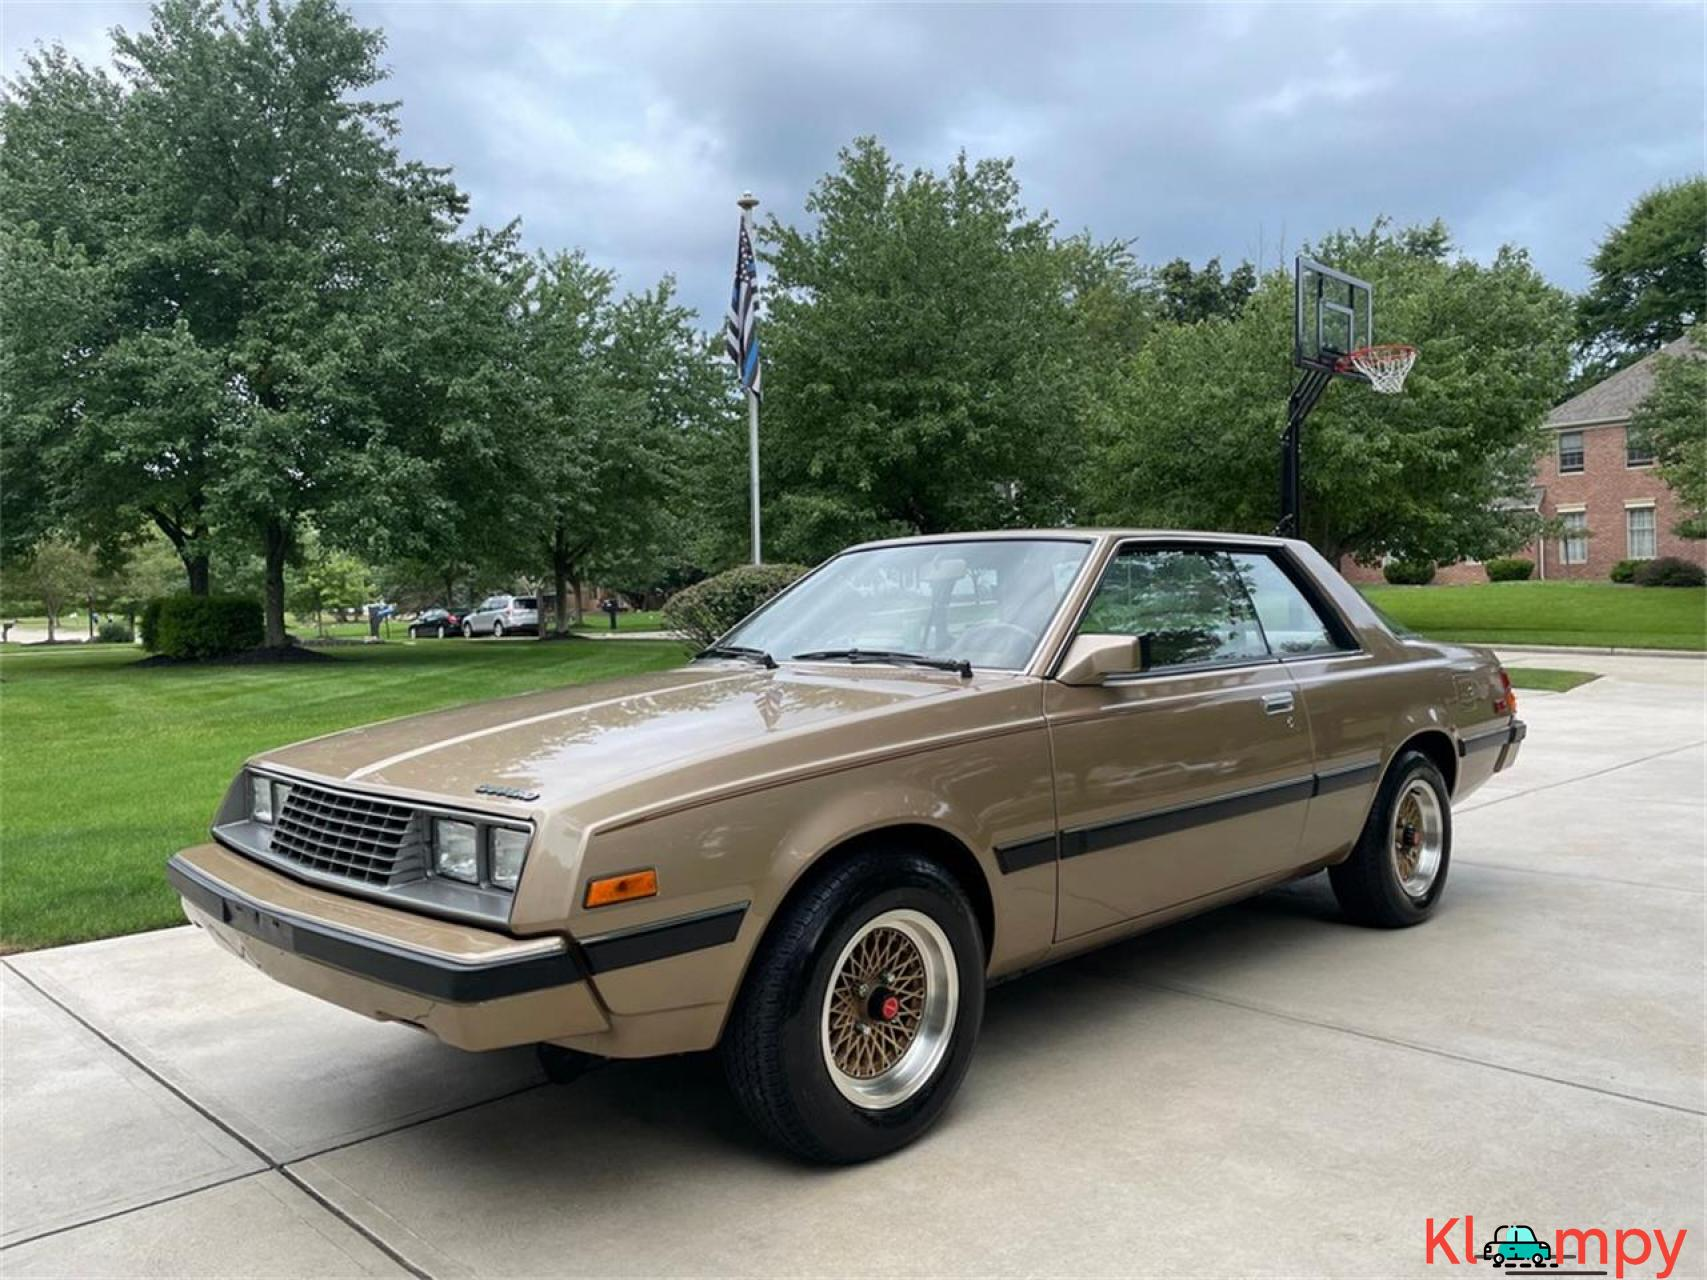 1983 Plymouth Sapporo 2.6L Engine - 5/18